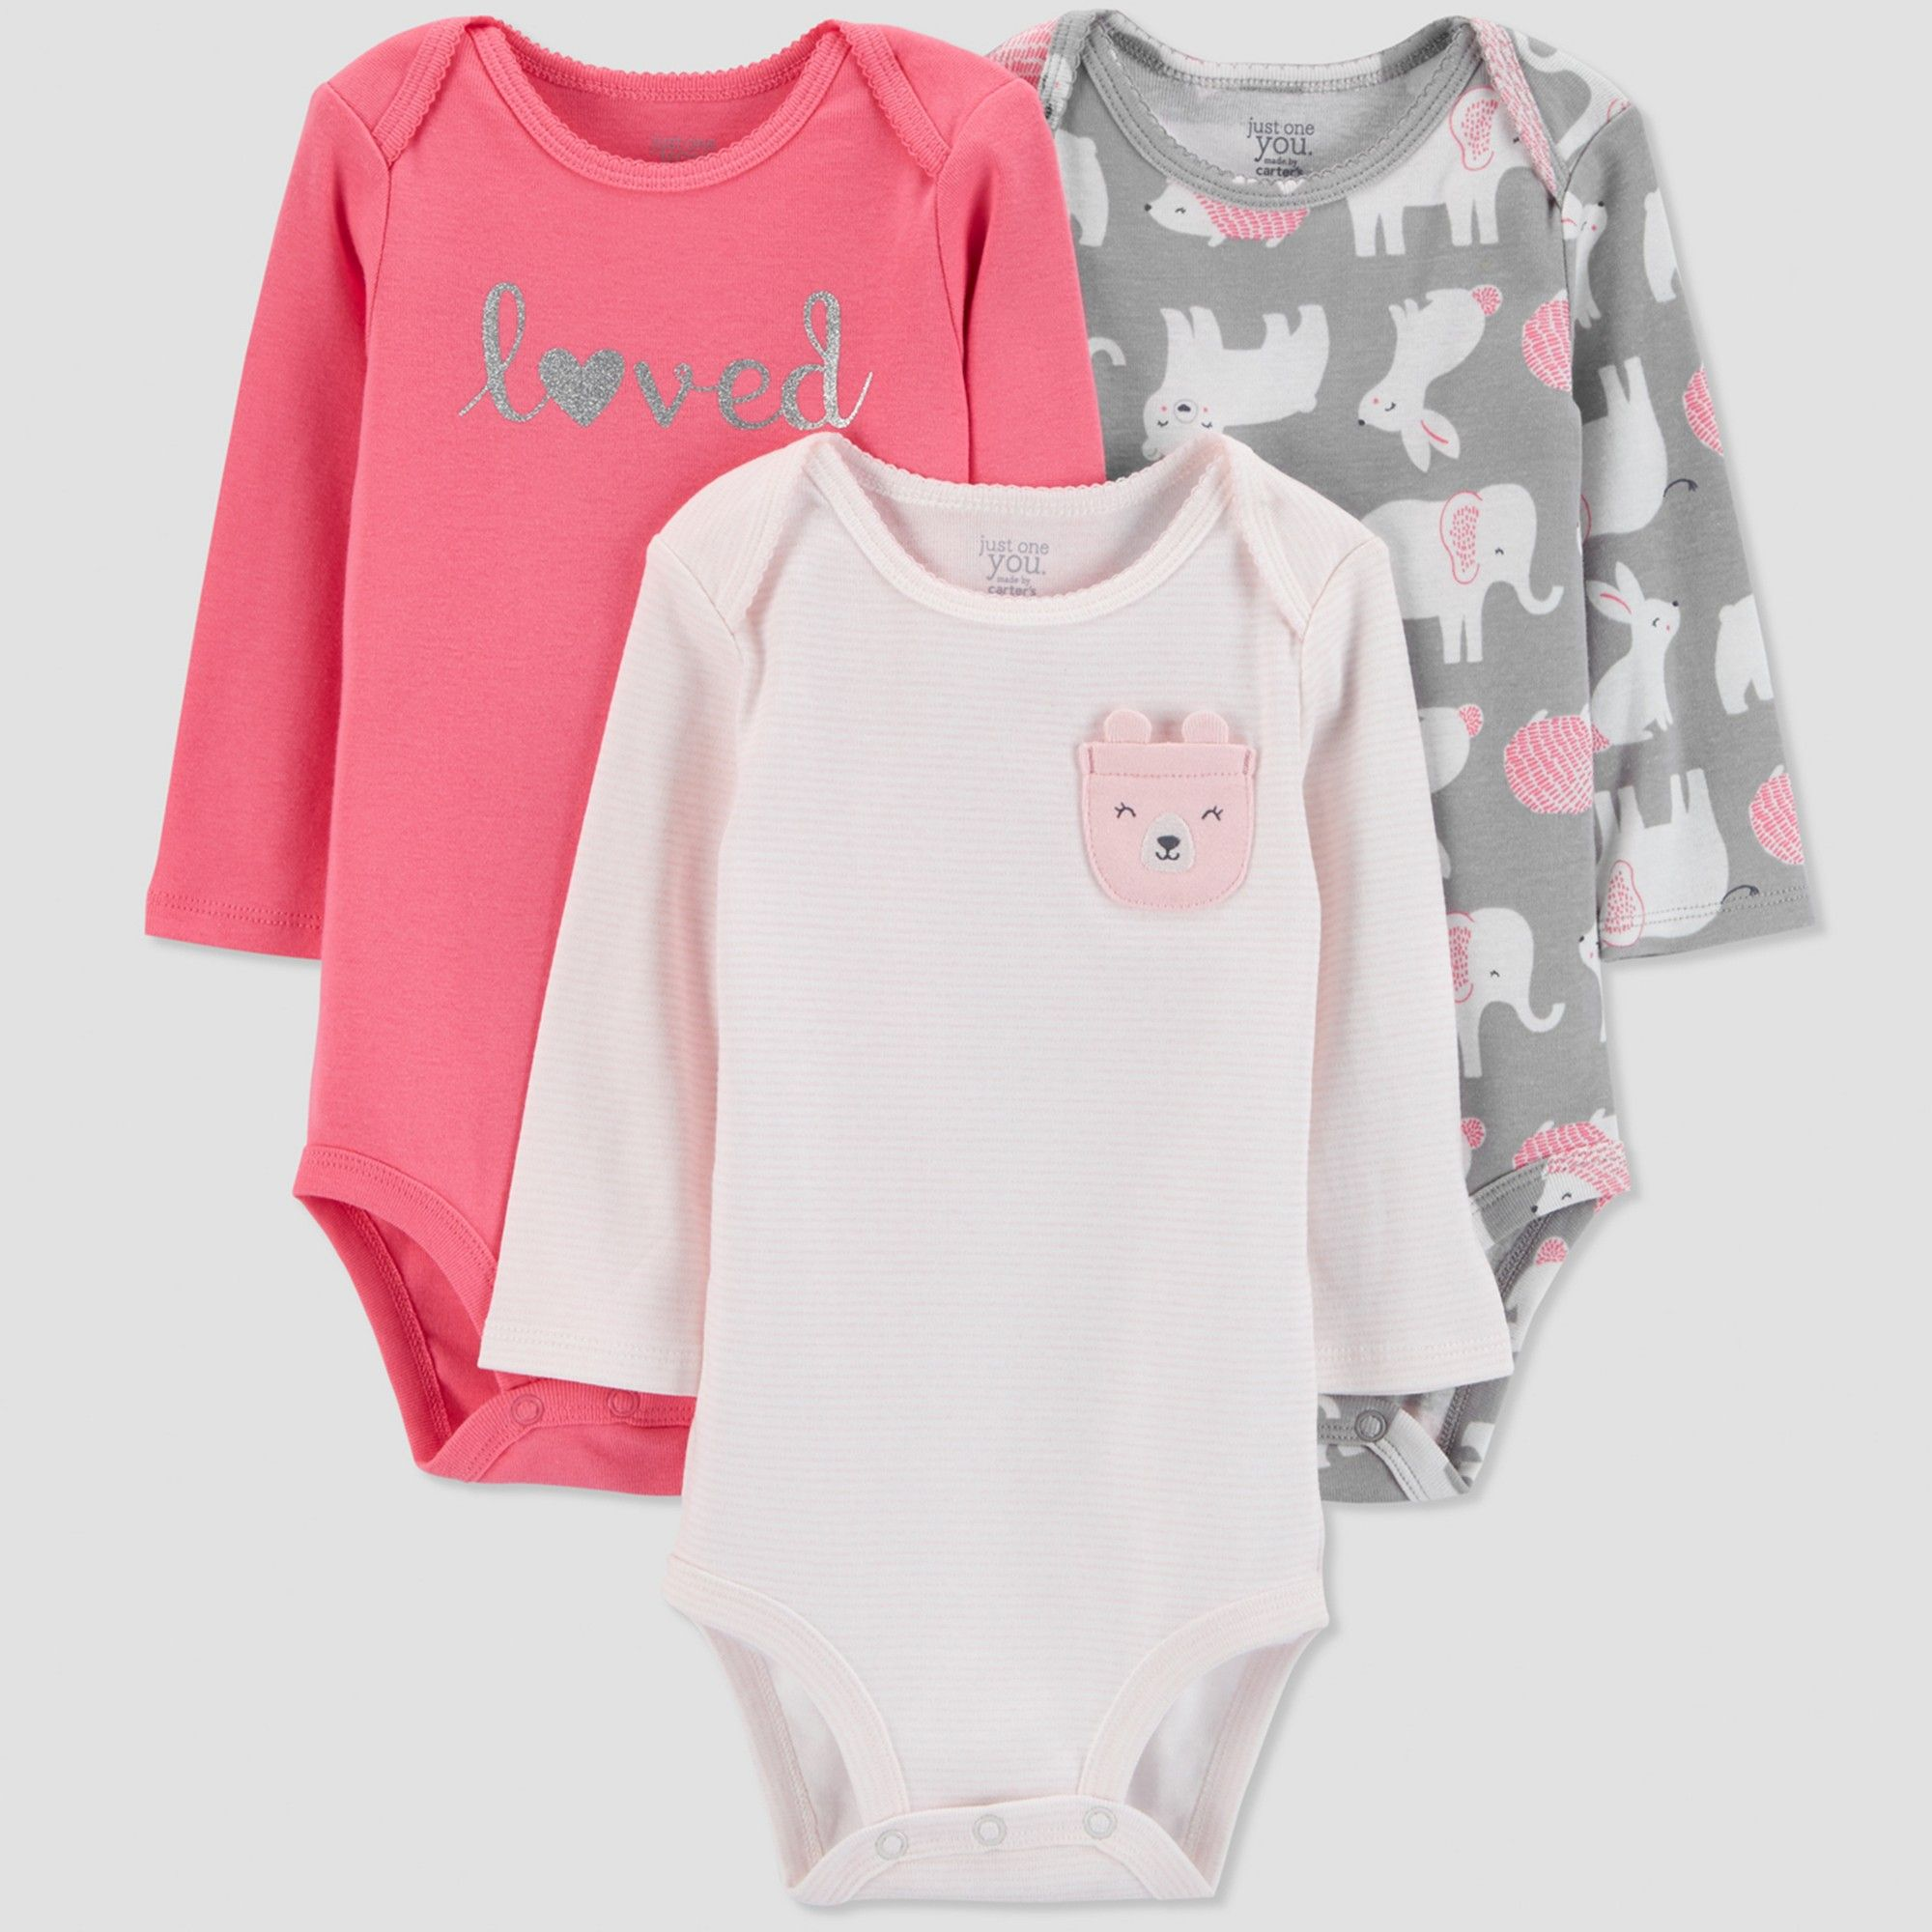 bfd88d526a68 Baby Girls  3pk Long sleeve Love Bodysuit - Just One You made by carter s  Pink Newborn